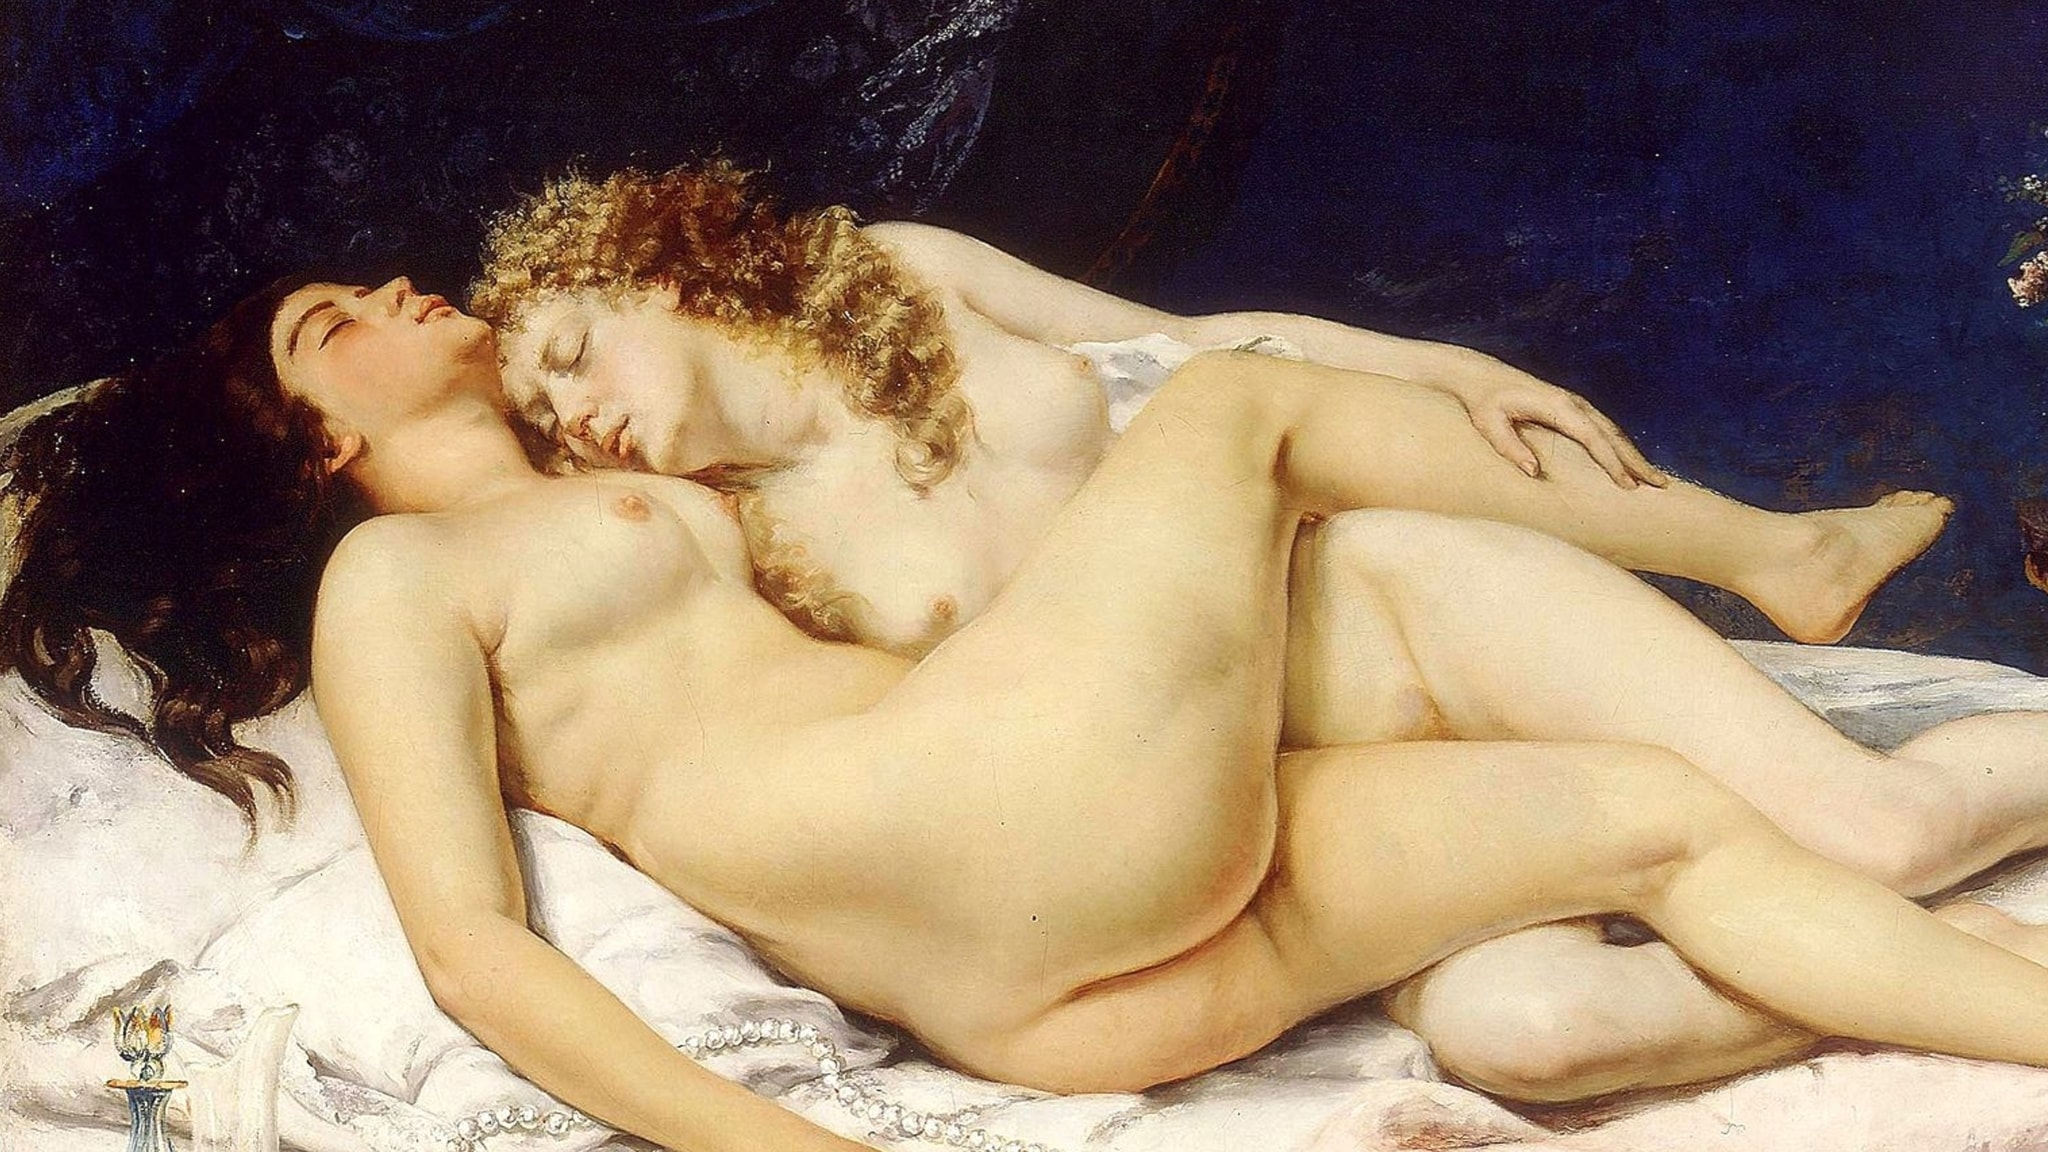 Gustave Courbet, The Sleep, 1866.